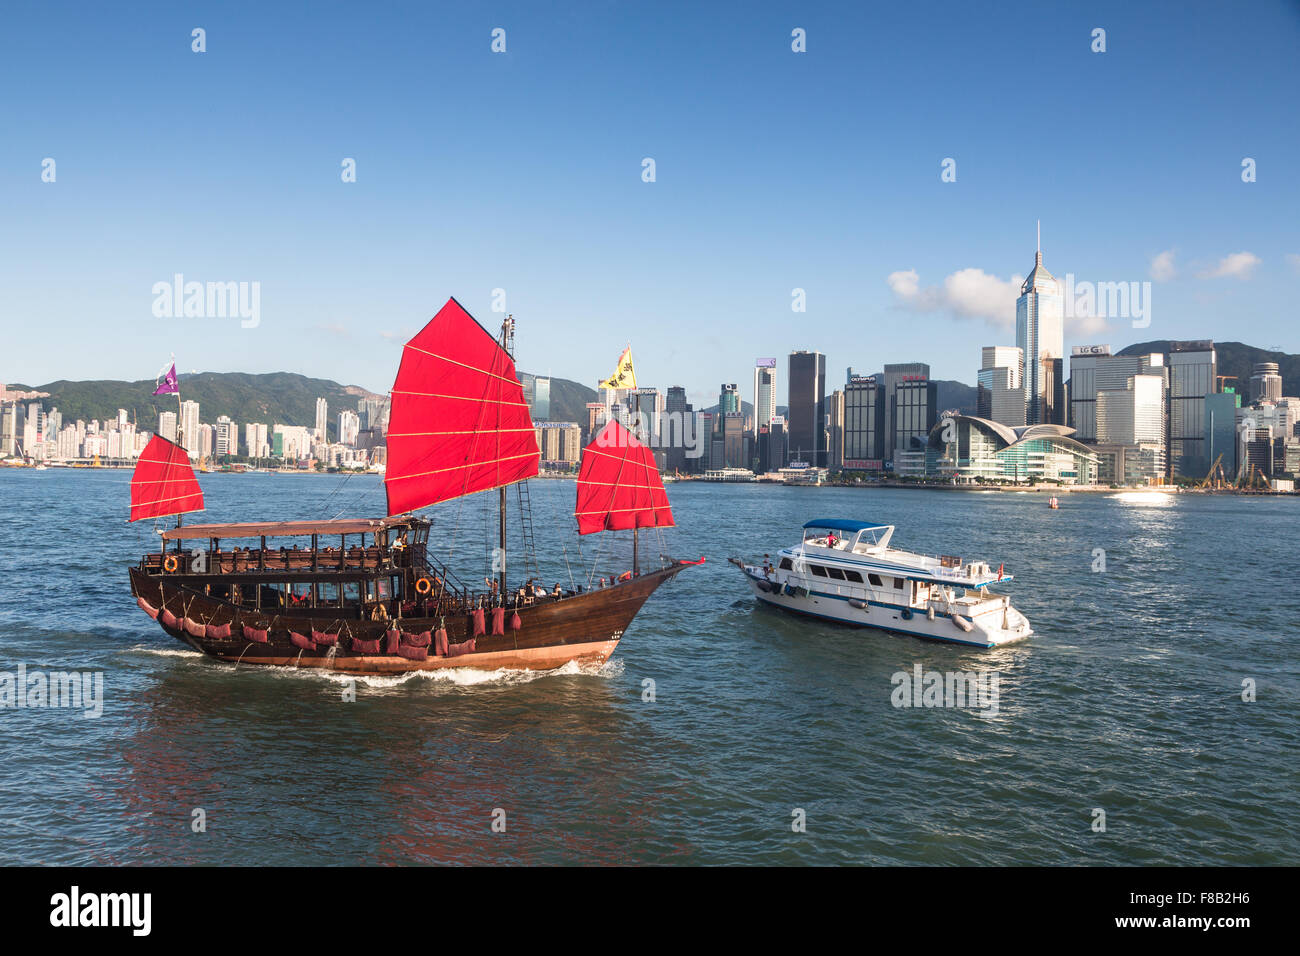 A tourist junk crosses a modern boat in Victoria harbor in Hong Kong - Stock Image